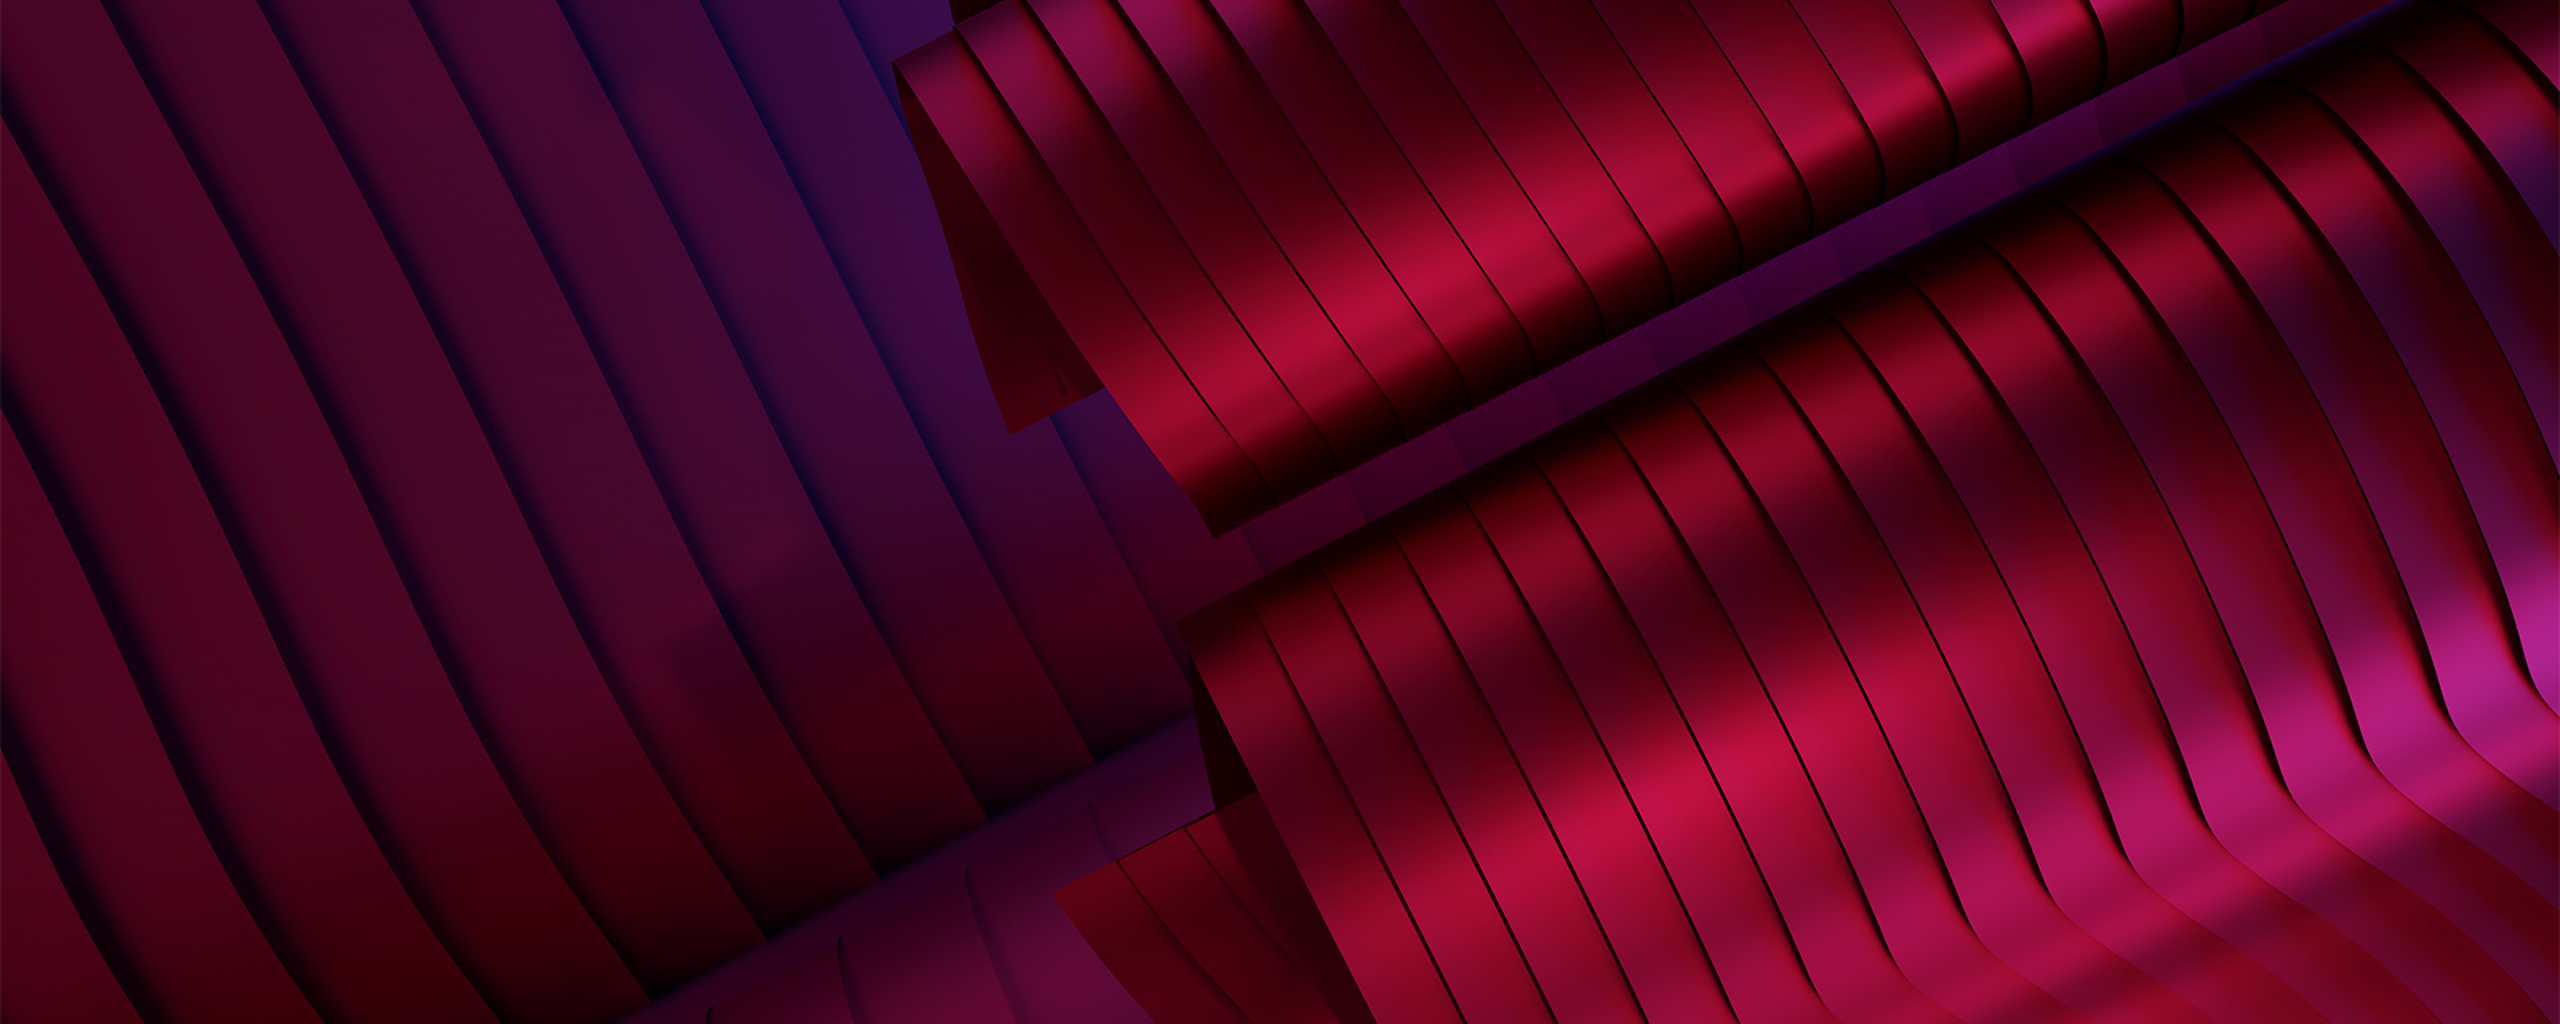 abstract-purple-mb.jpg